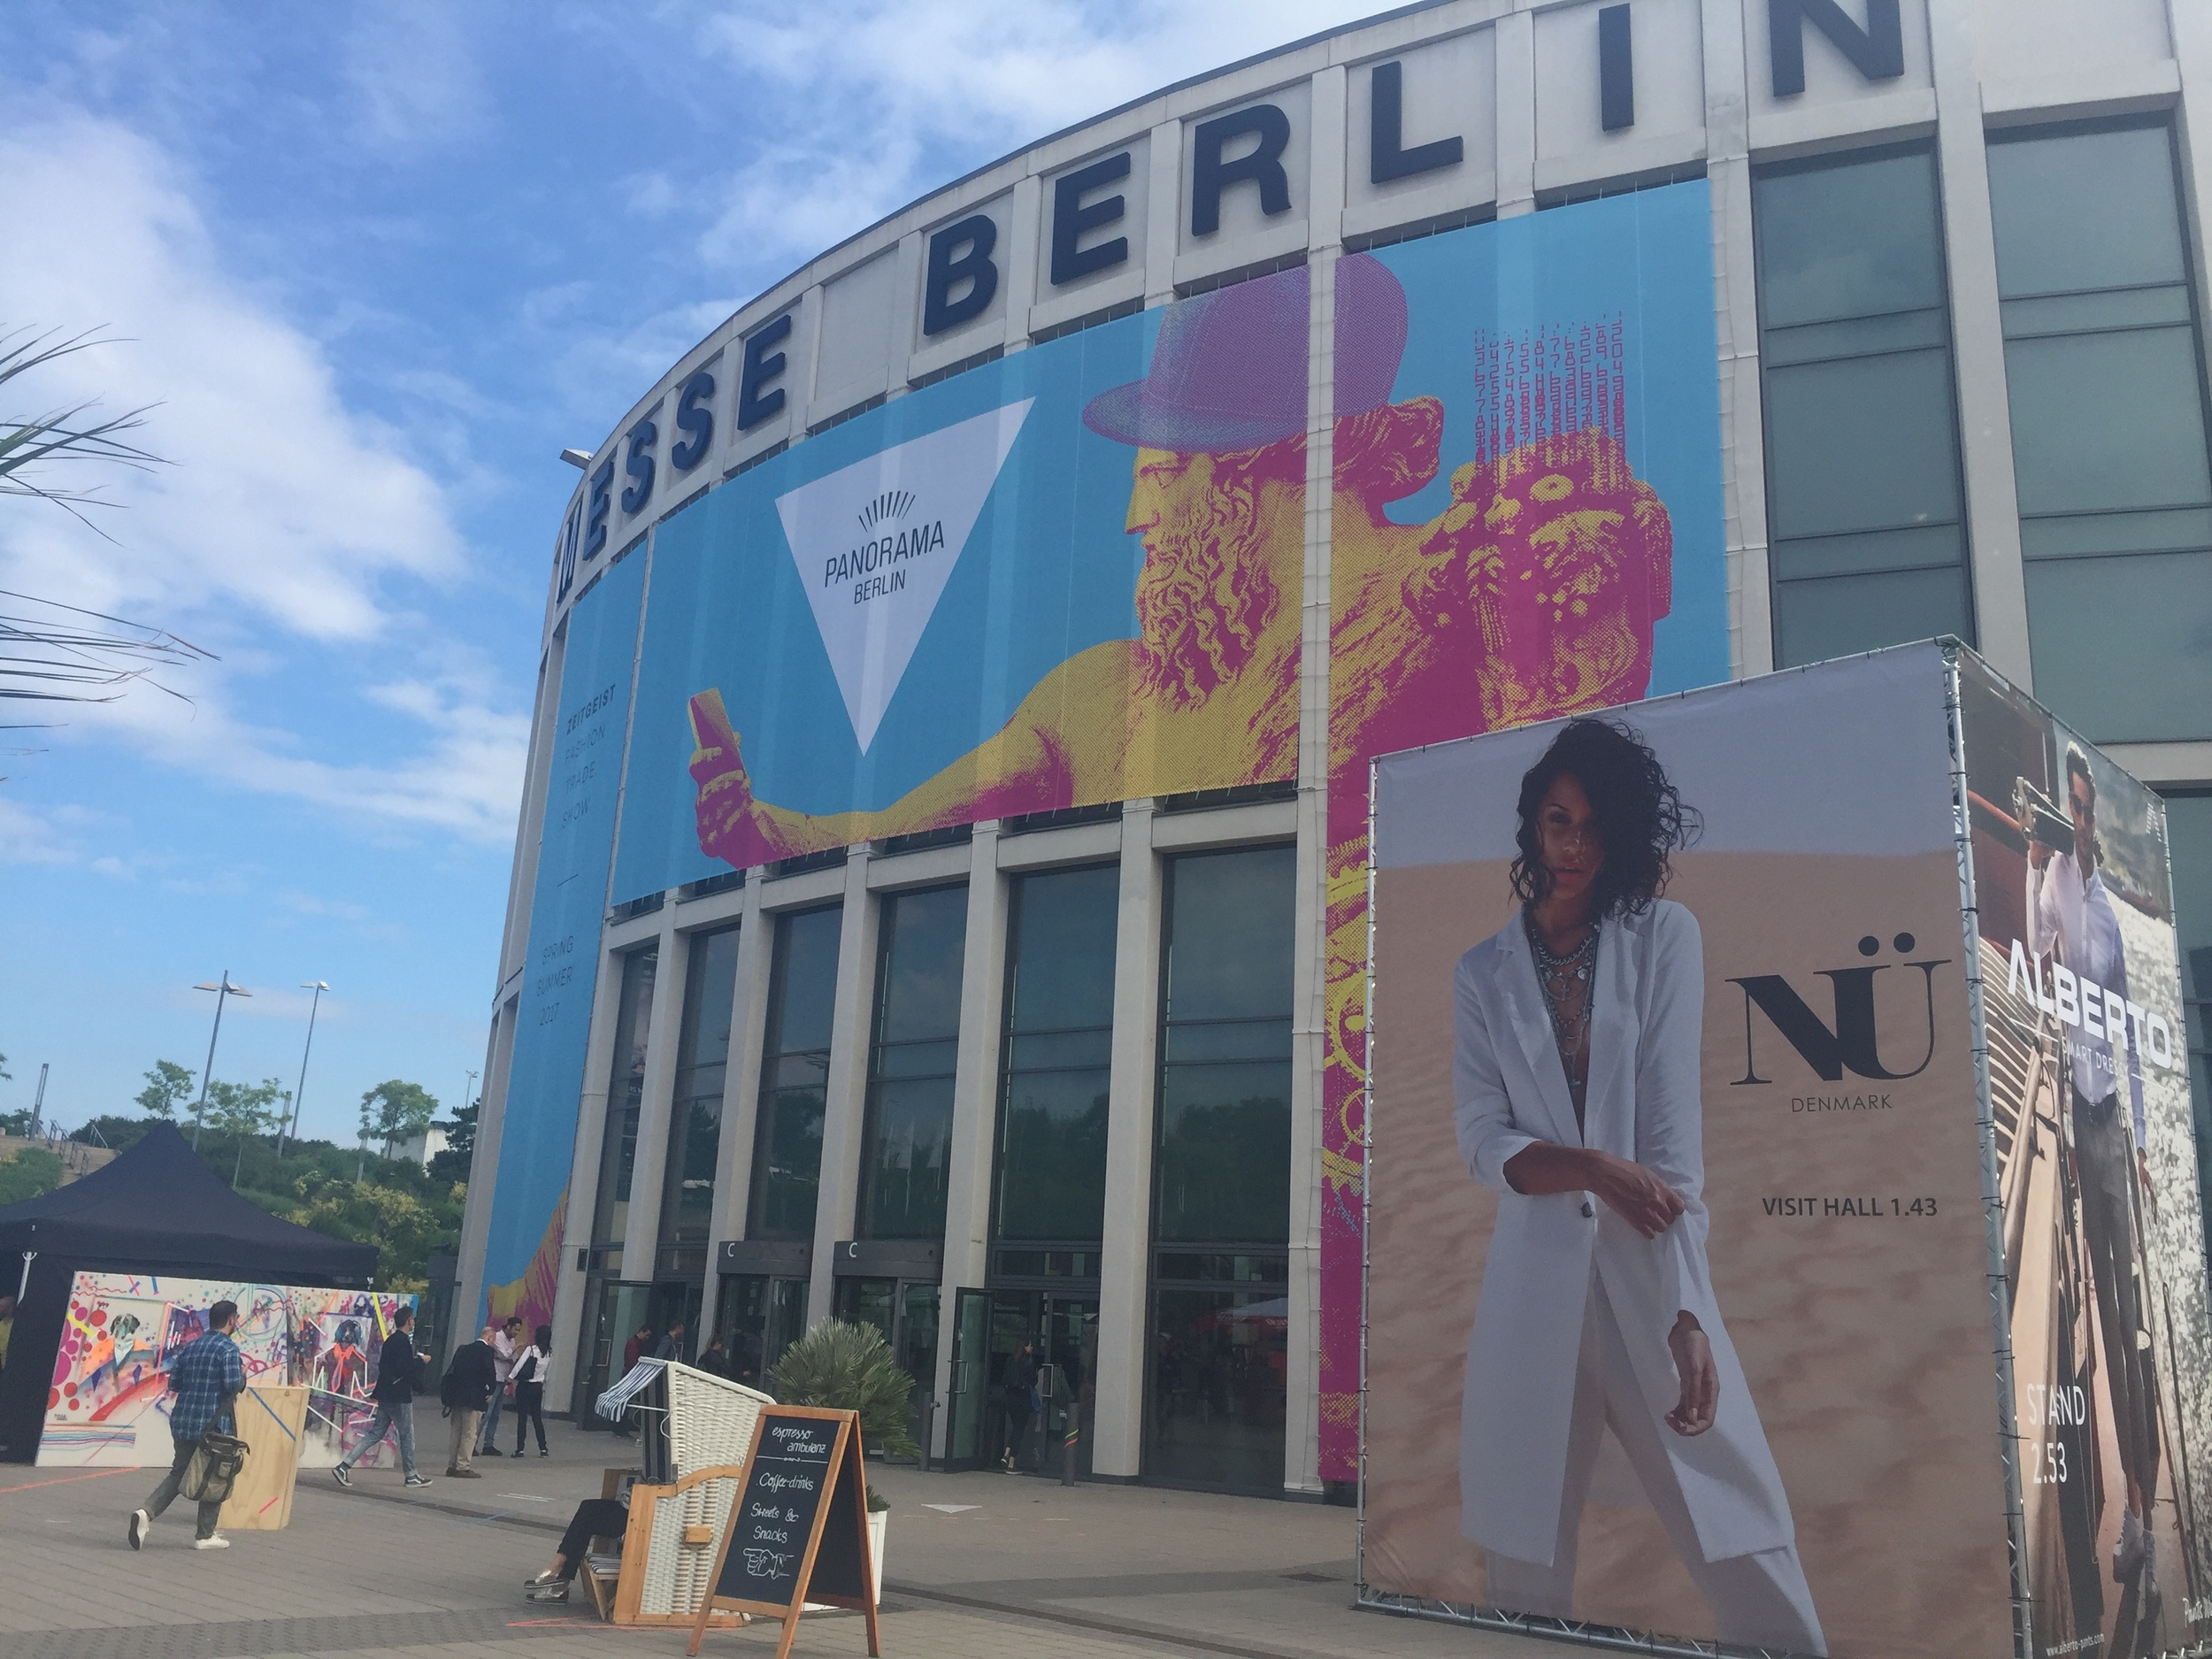 With more than 700 collections spanning 45,000 square meters of exhibition space PANORAMA BERLIN is the largest fashion fair in Germany